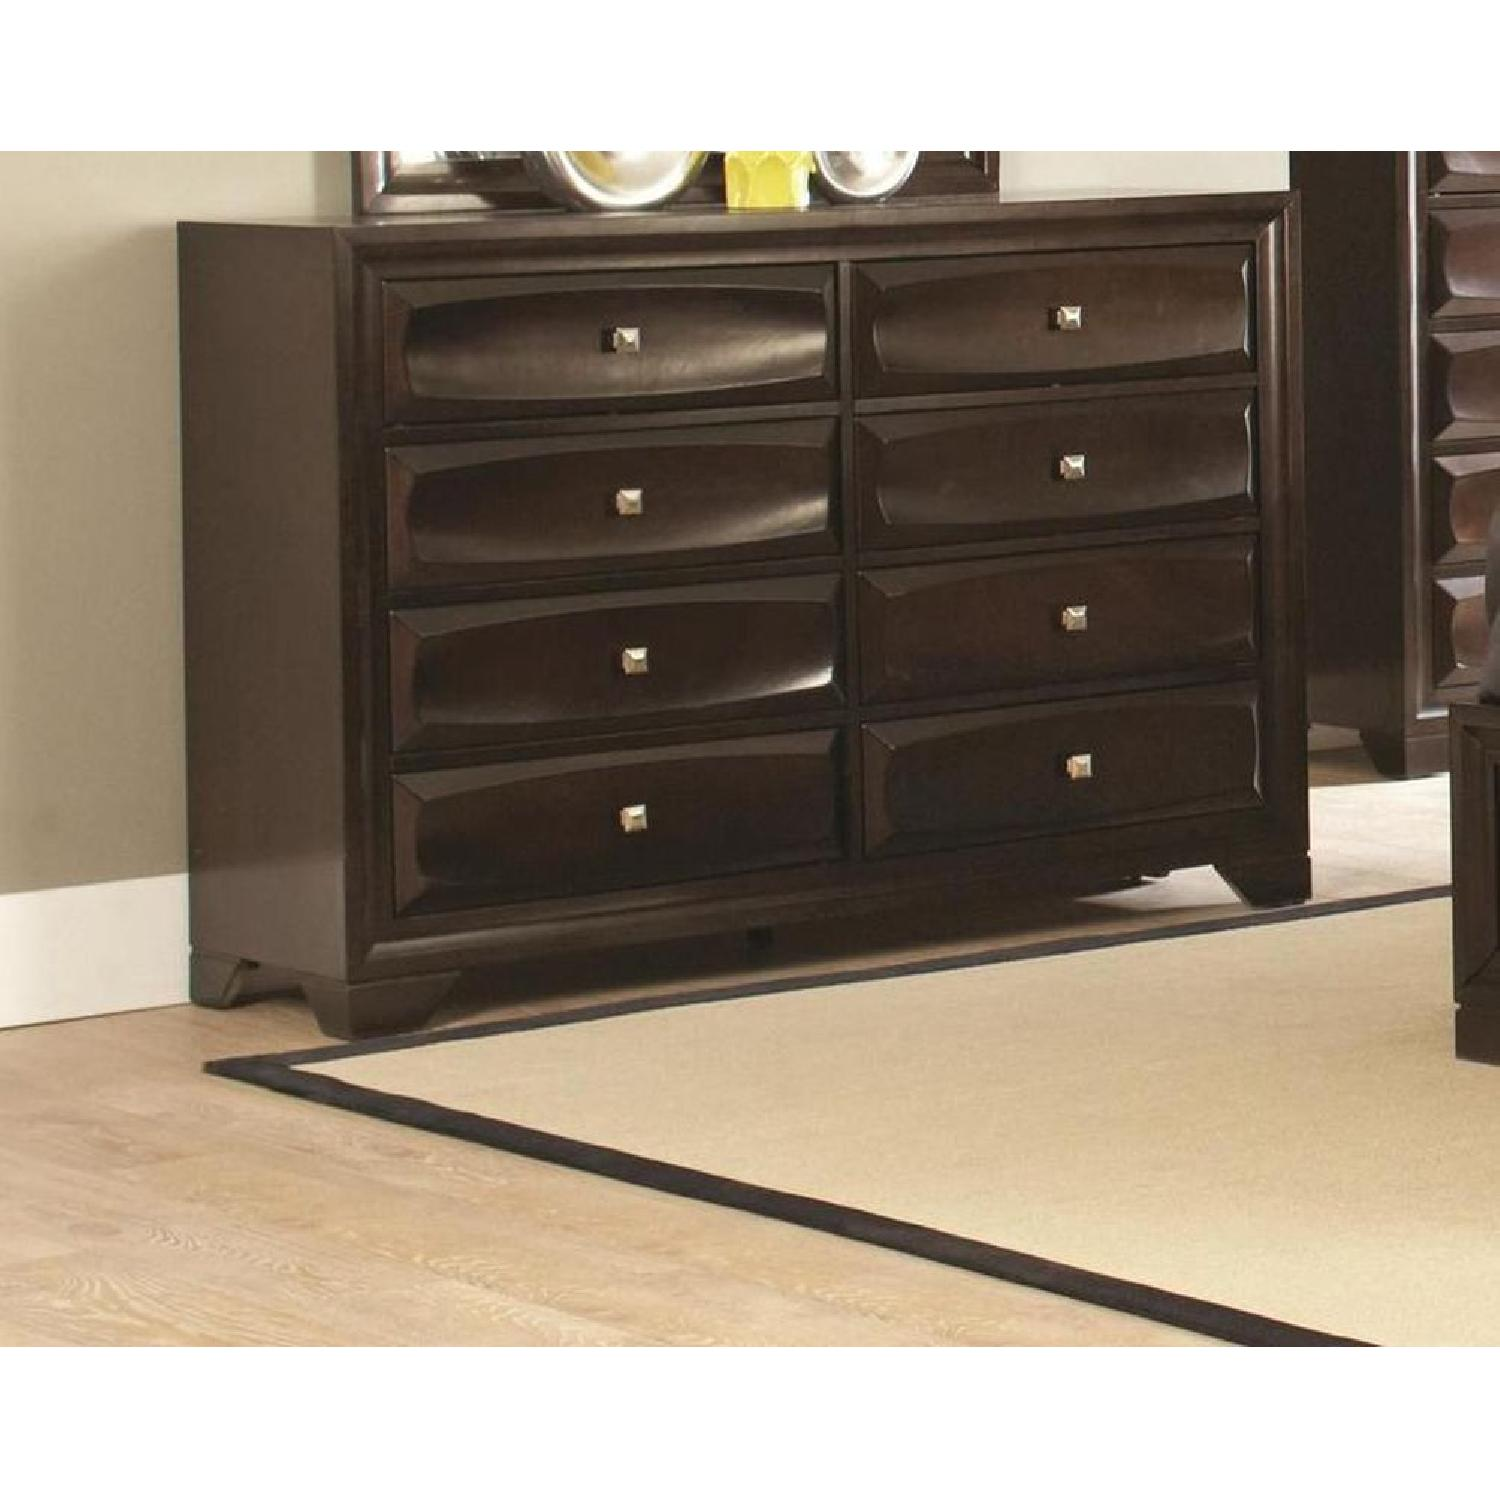 Dresser in Cappuccino w/ Drawer Front Design - image-2